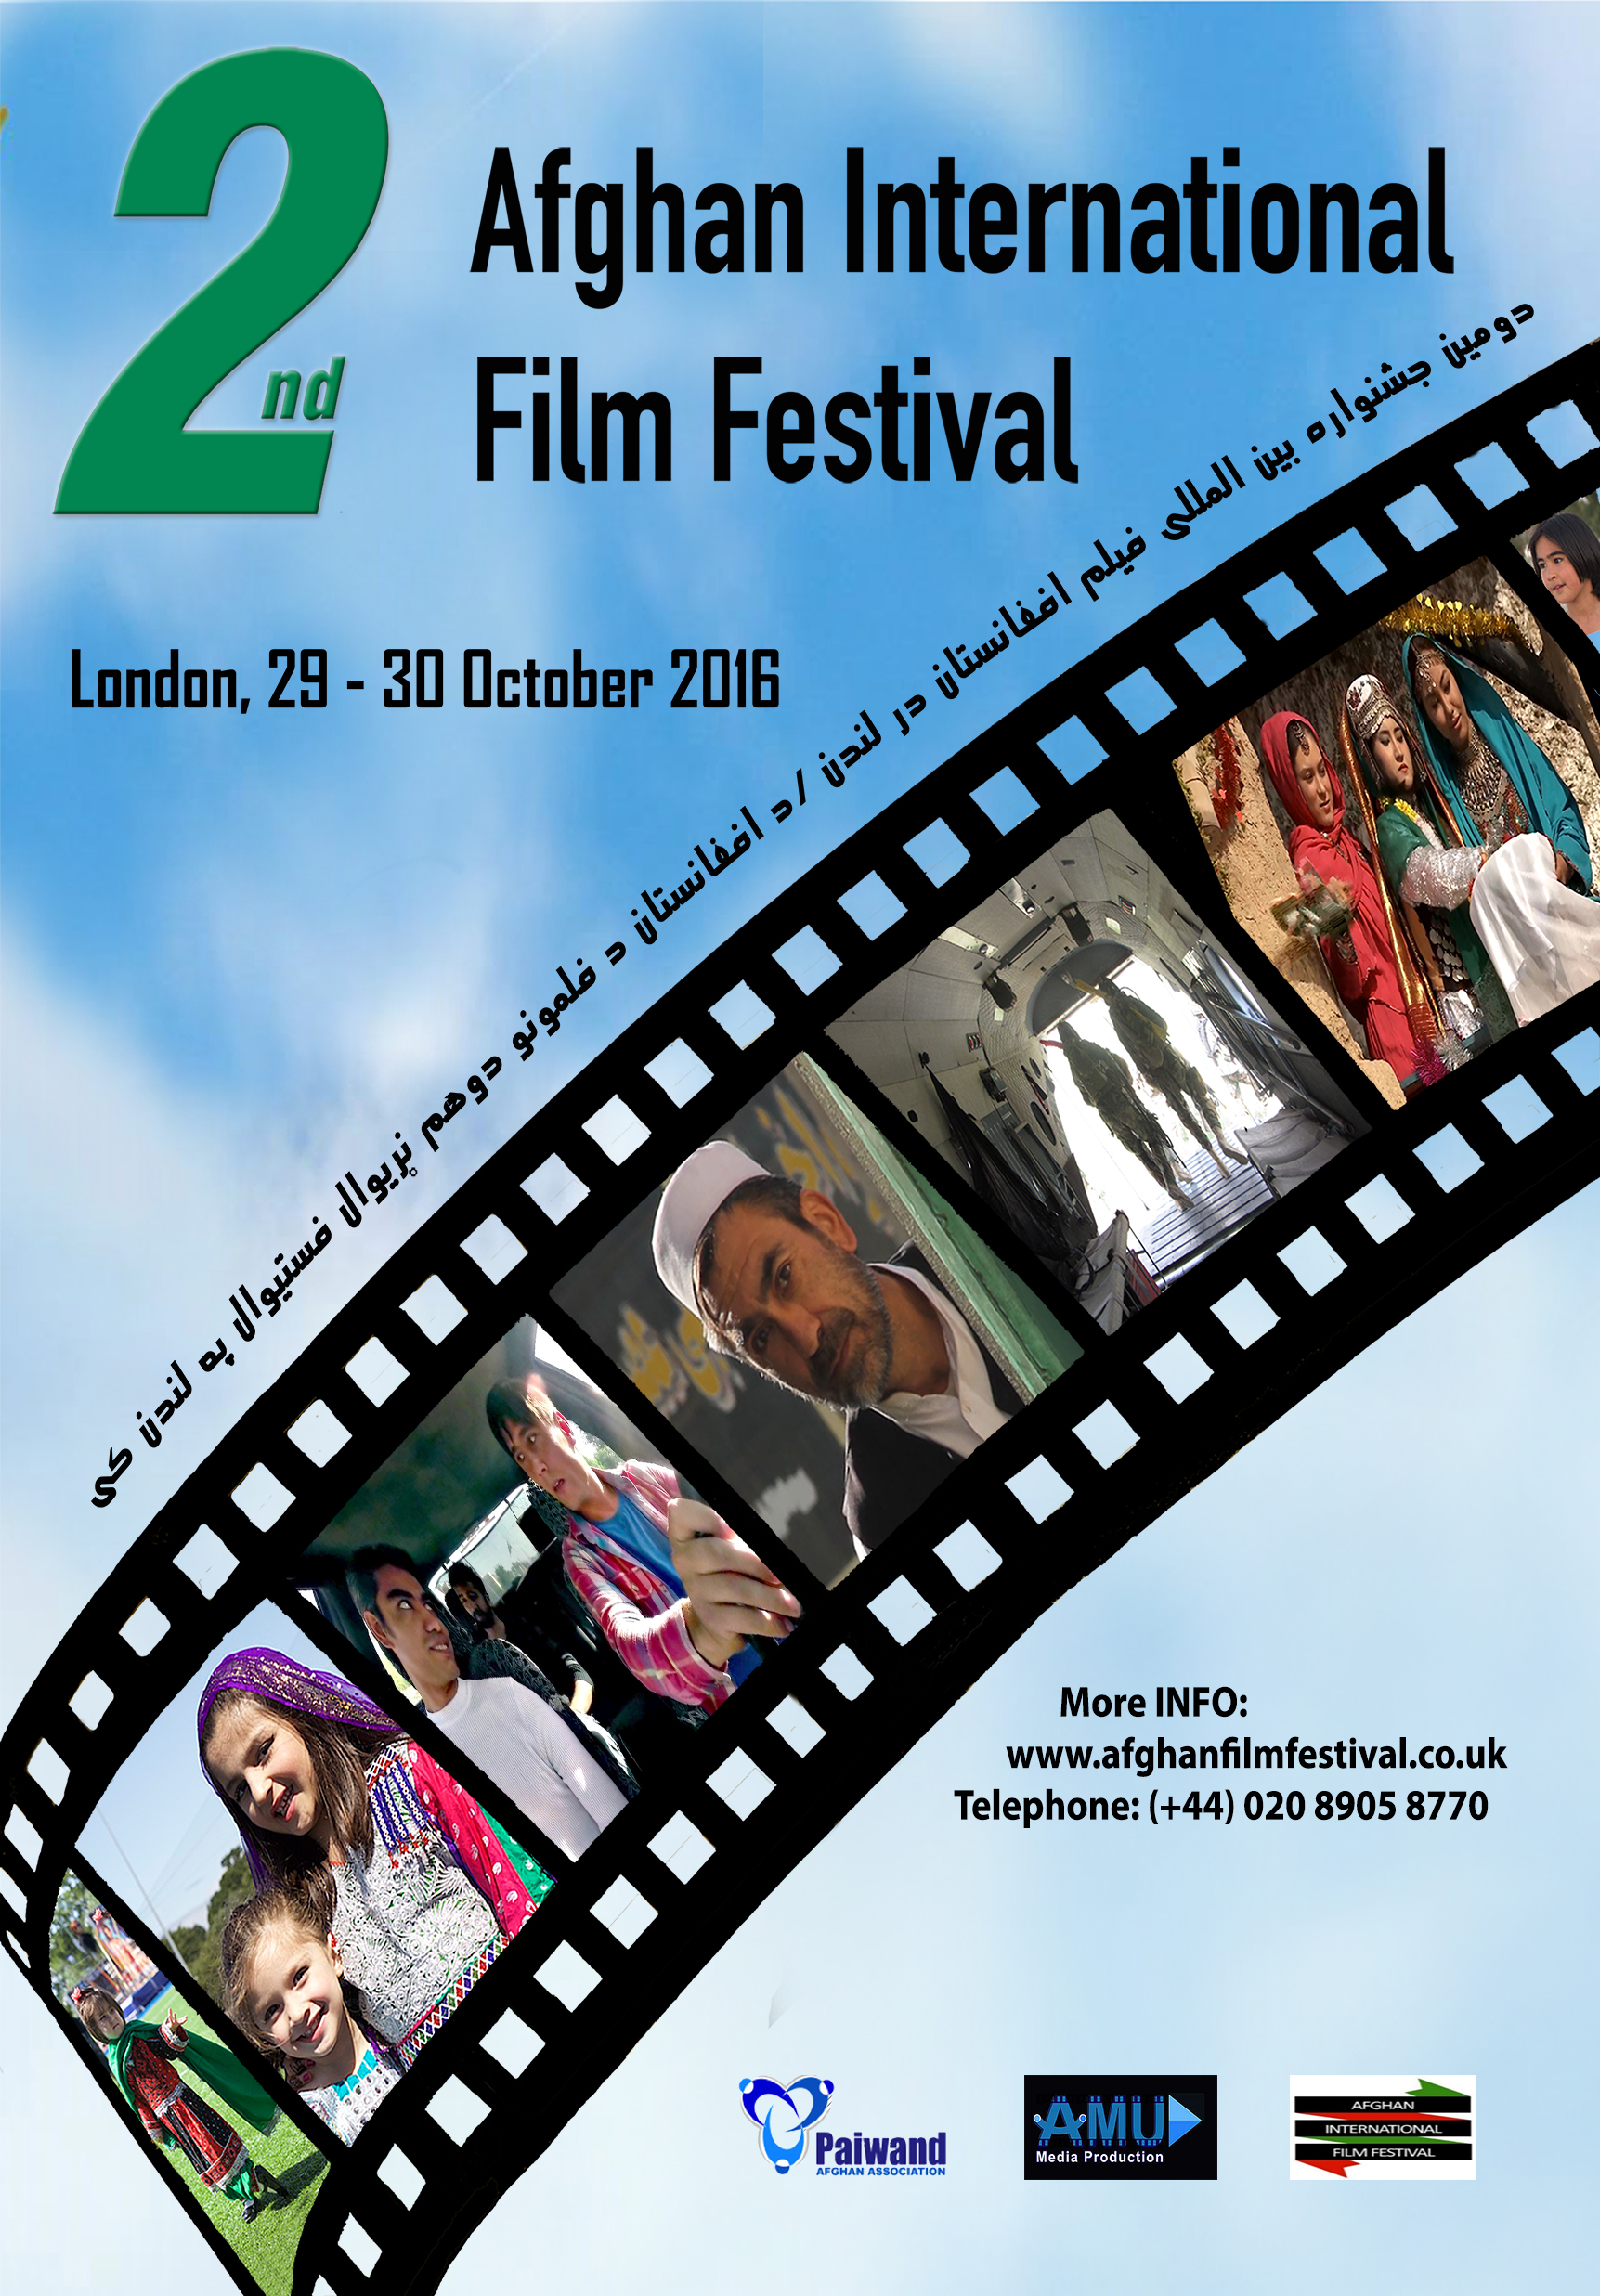 2nd the Afghan international film festival in London